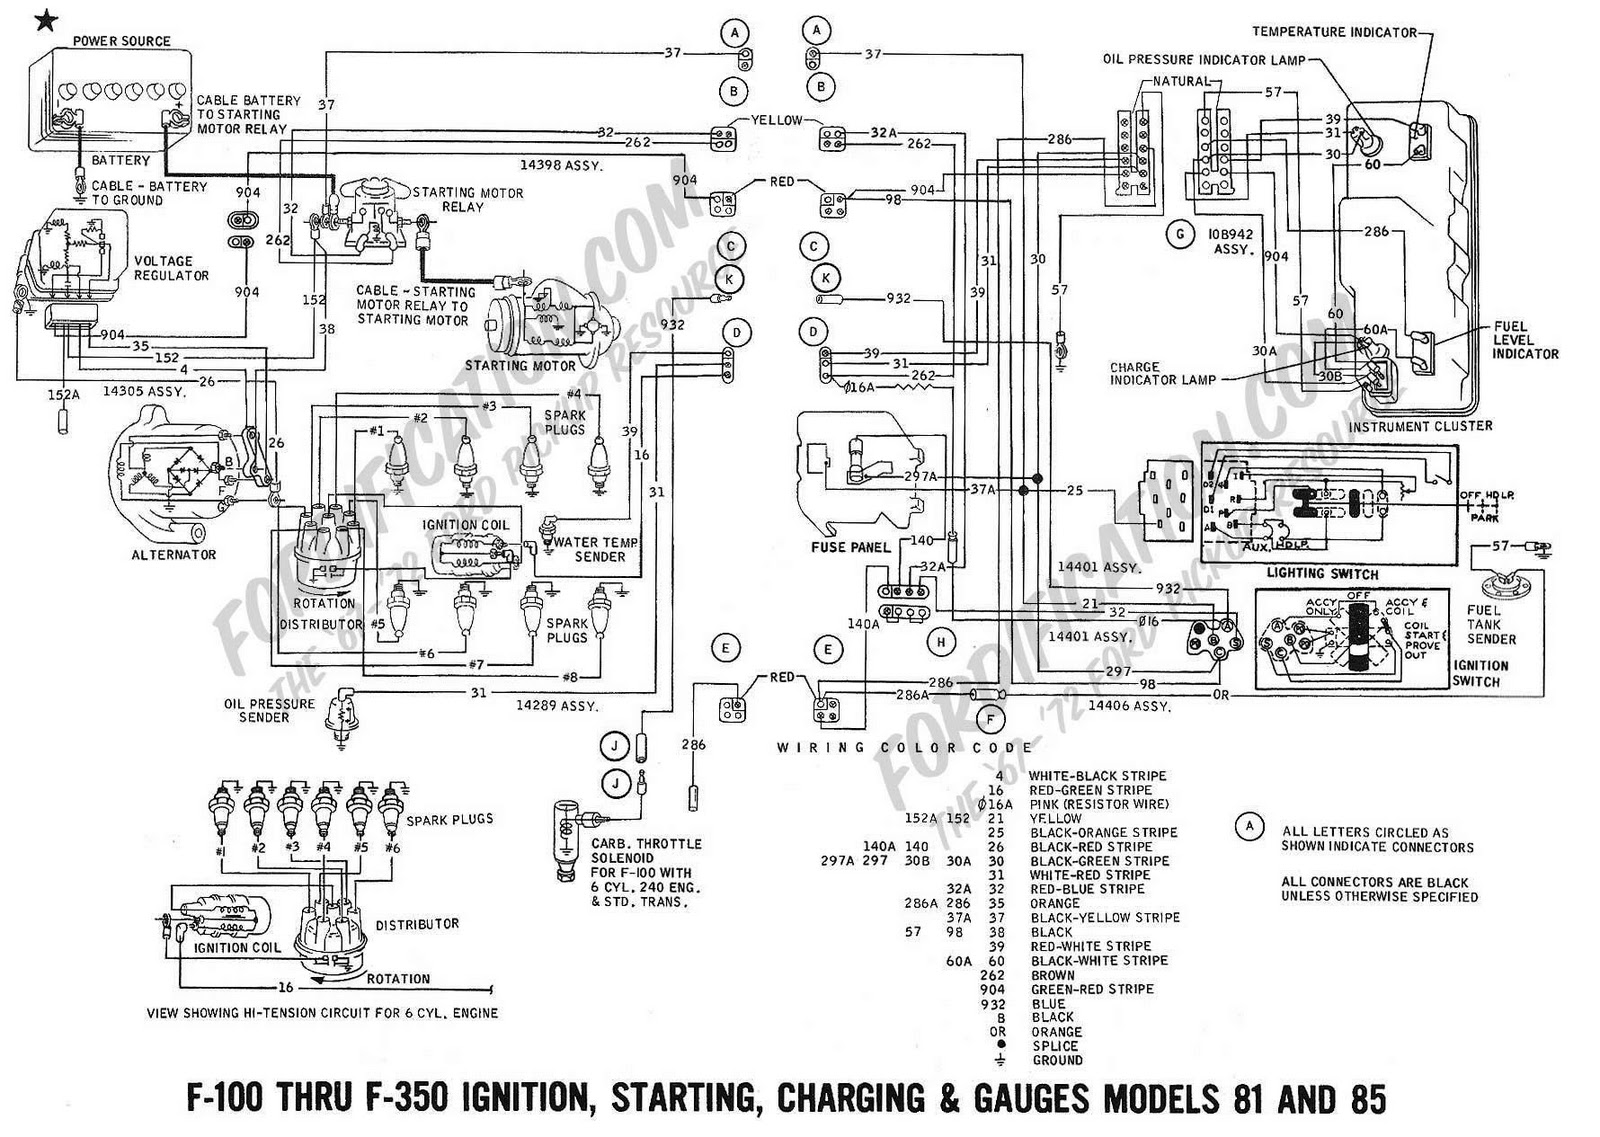 6c278 l9000 wiring diagram digital resources ford f650 wiring schematic ford aeromax l9000 wiring schematic #14